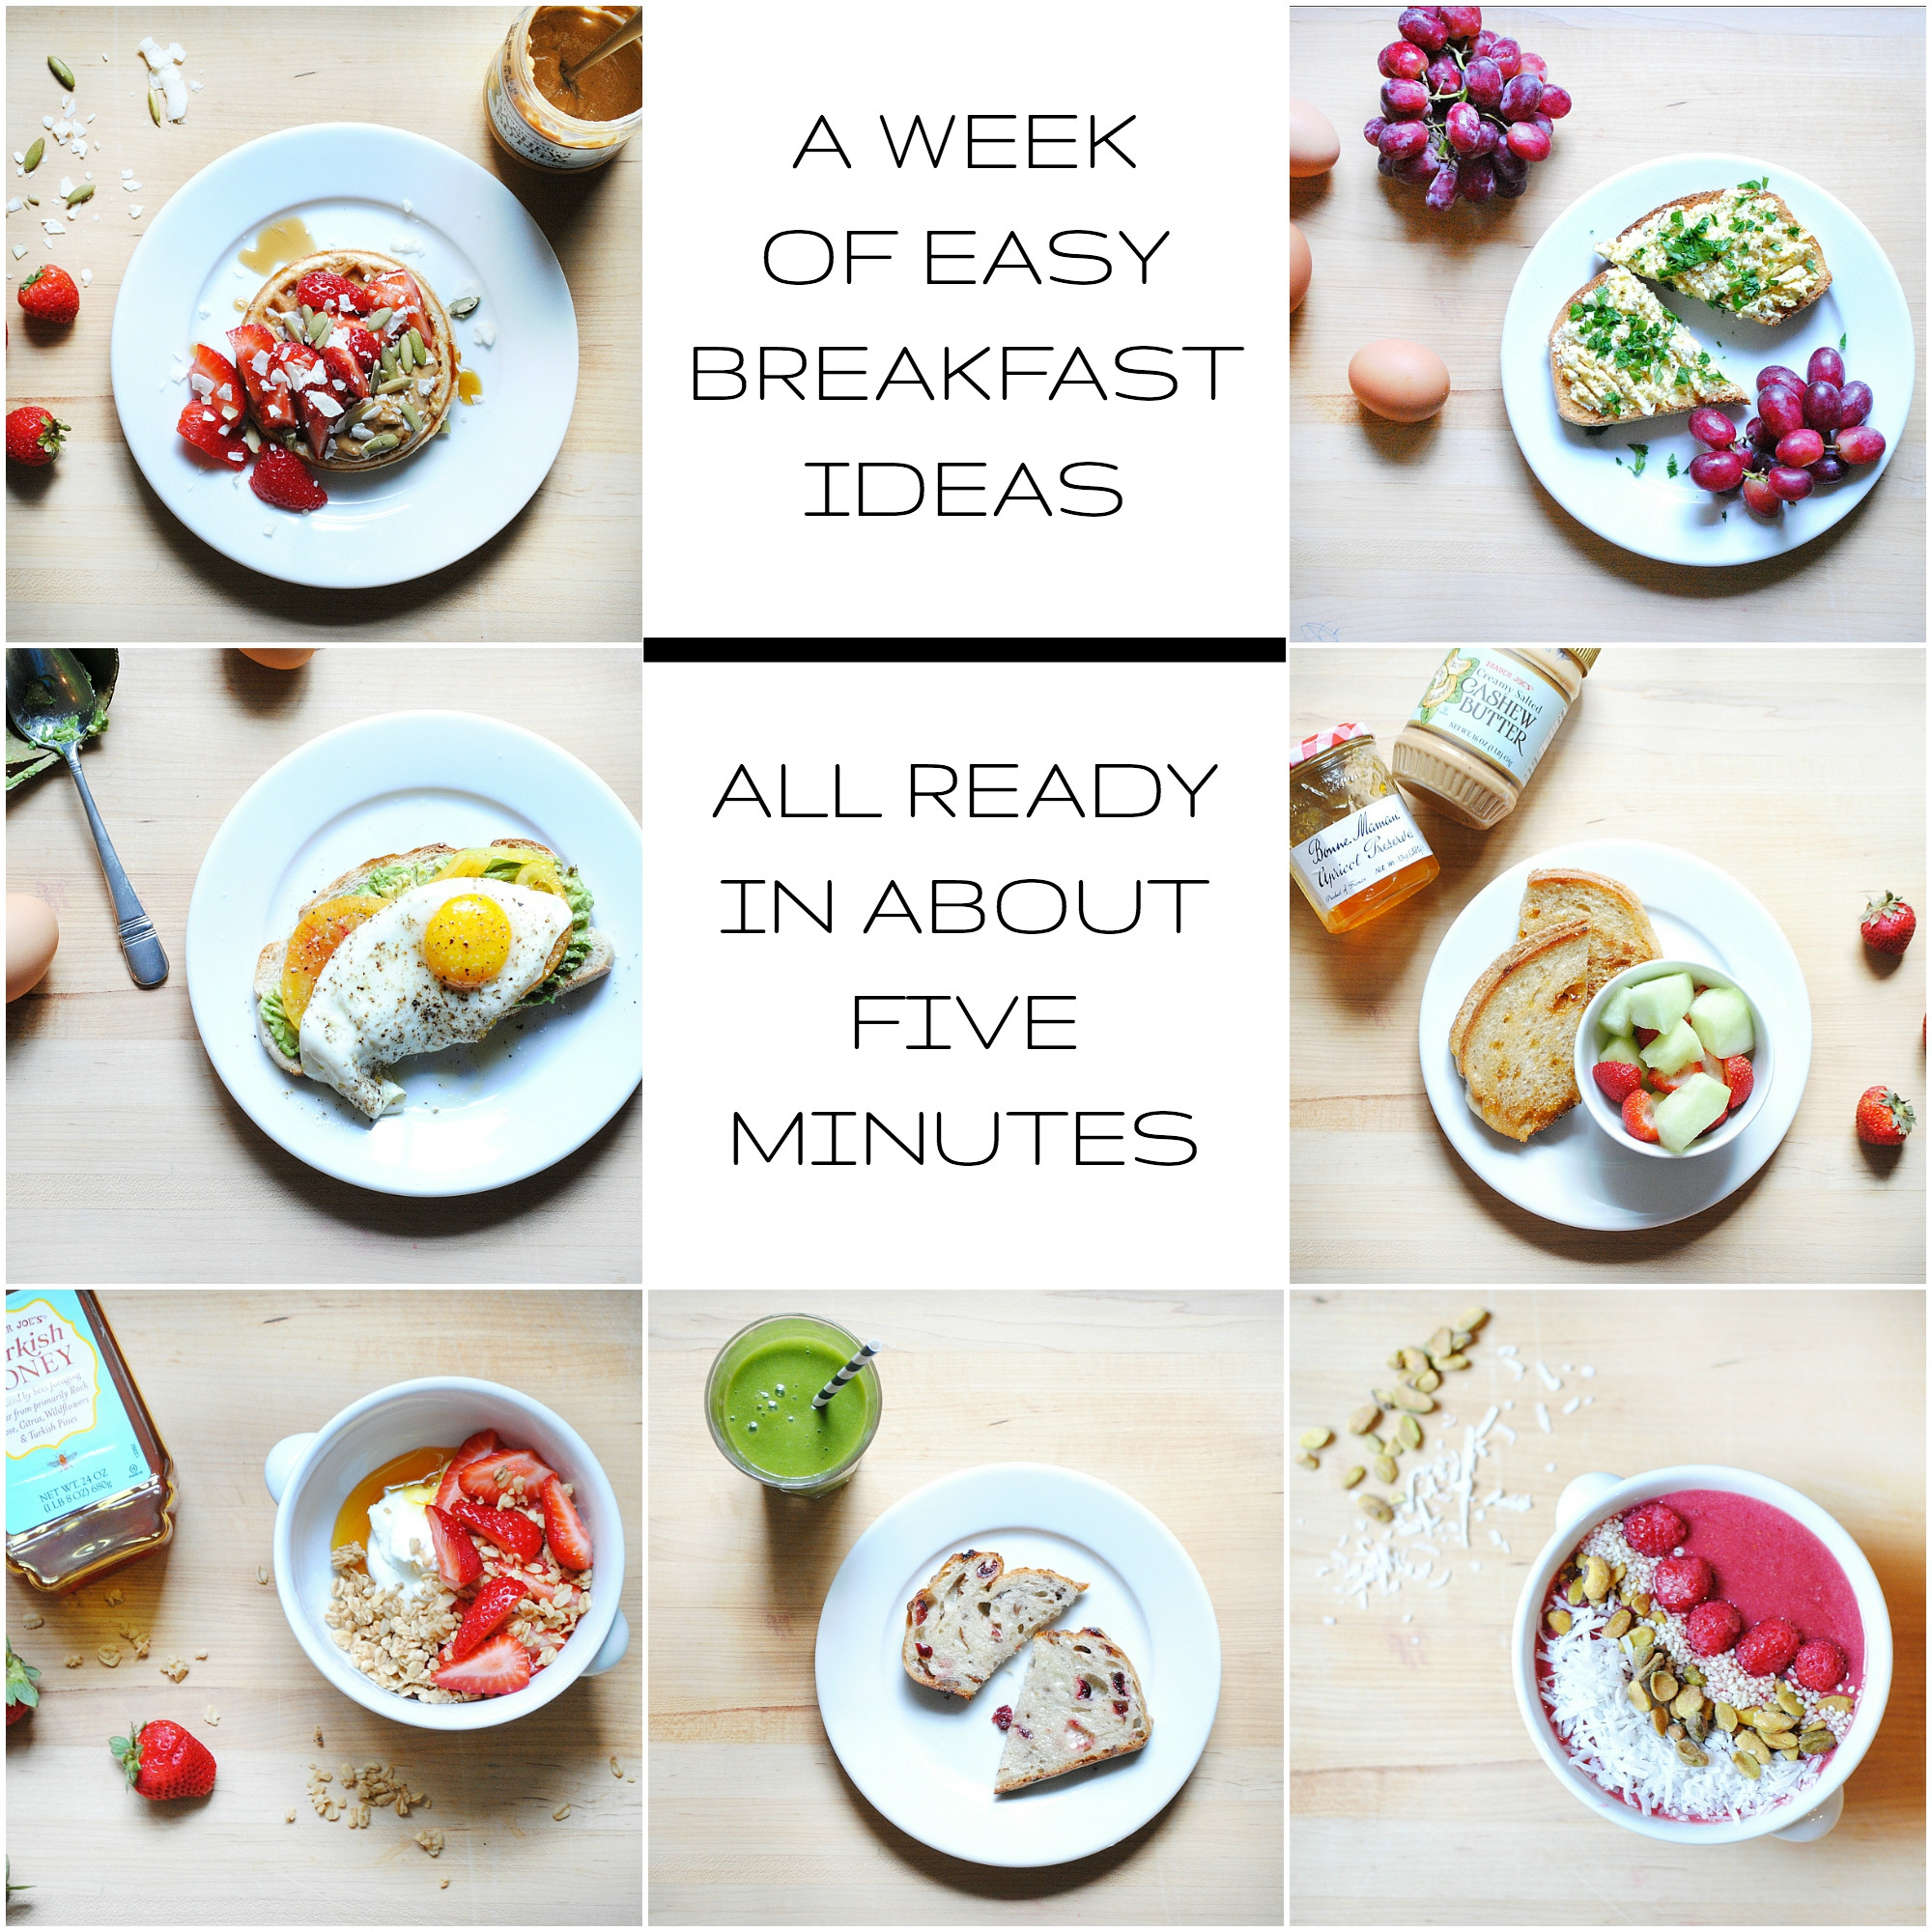 Easy And Healthy Breakfast Ideas  A Week of Healthy Easy Breakfast Ideas All Ready in